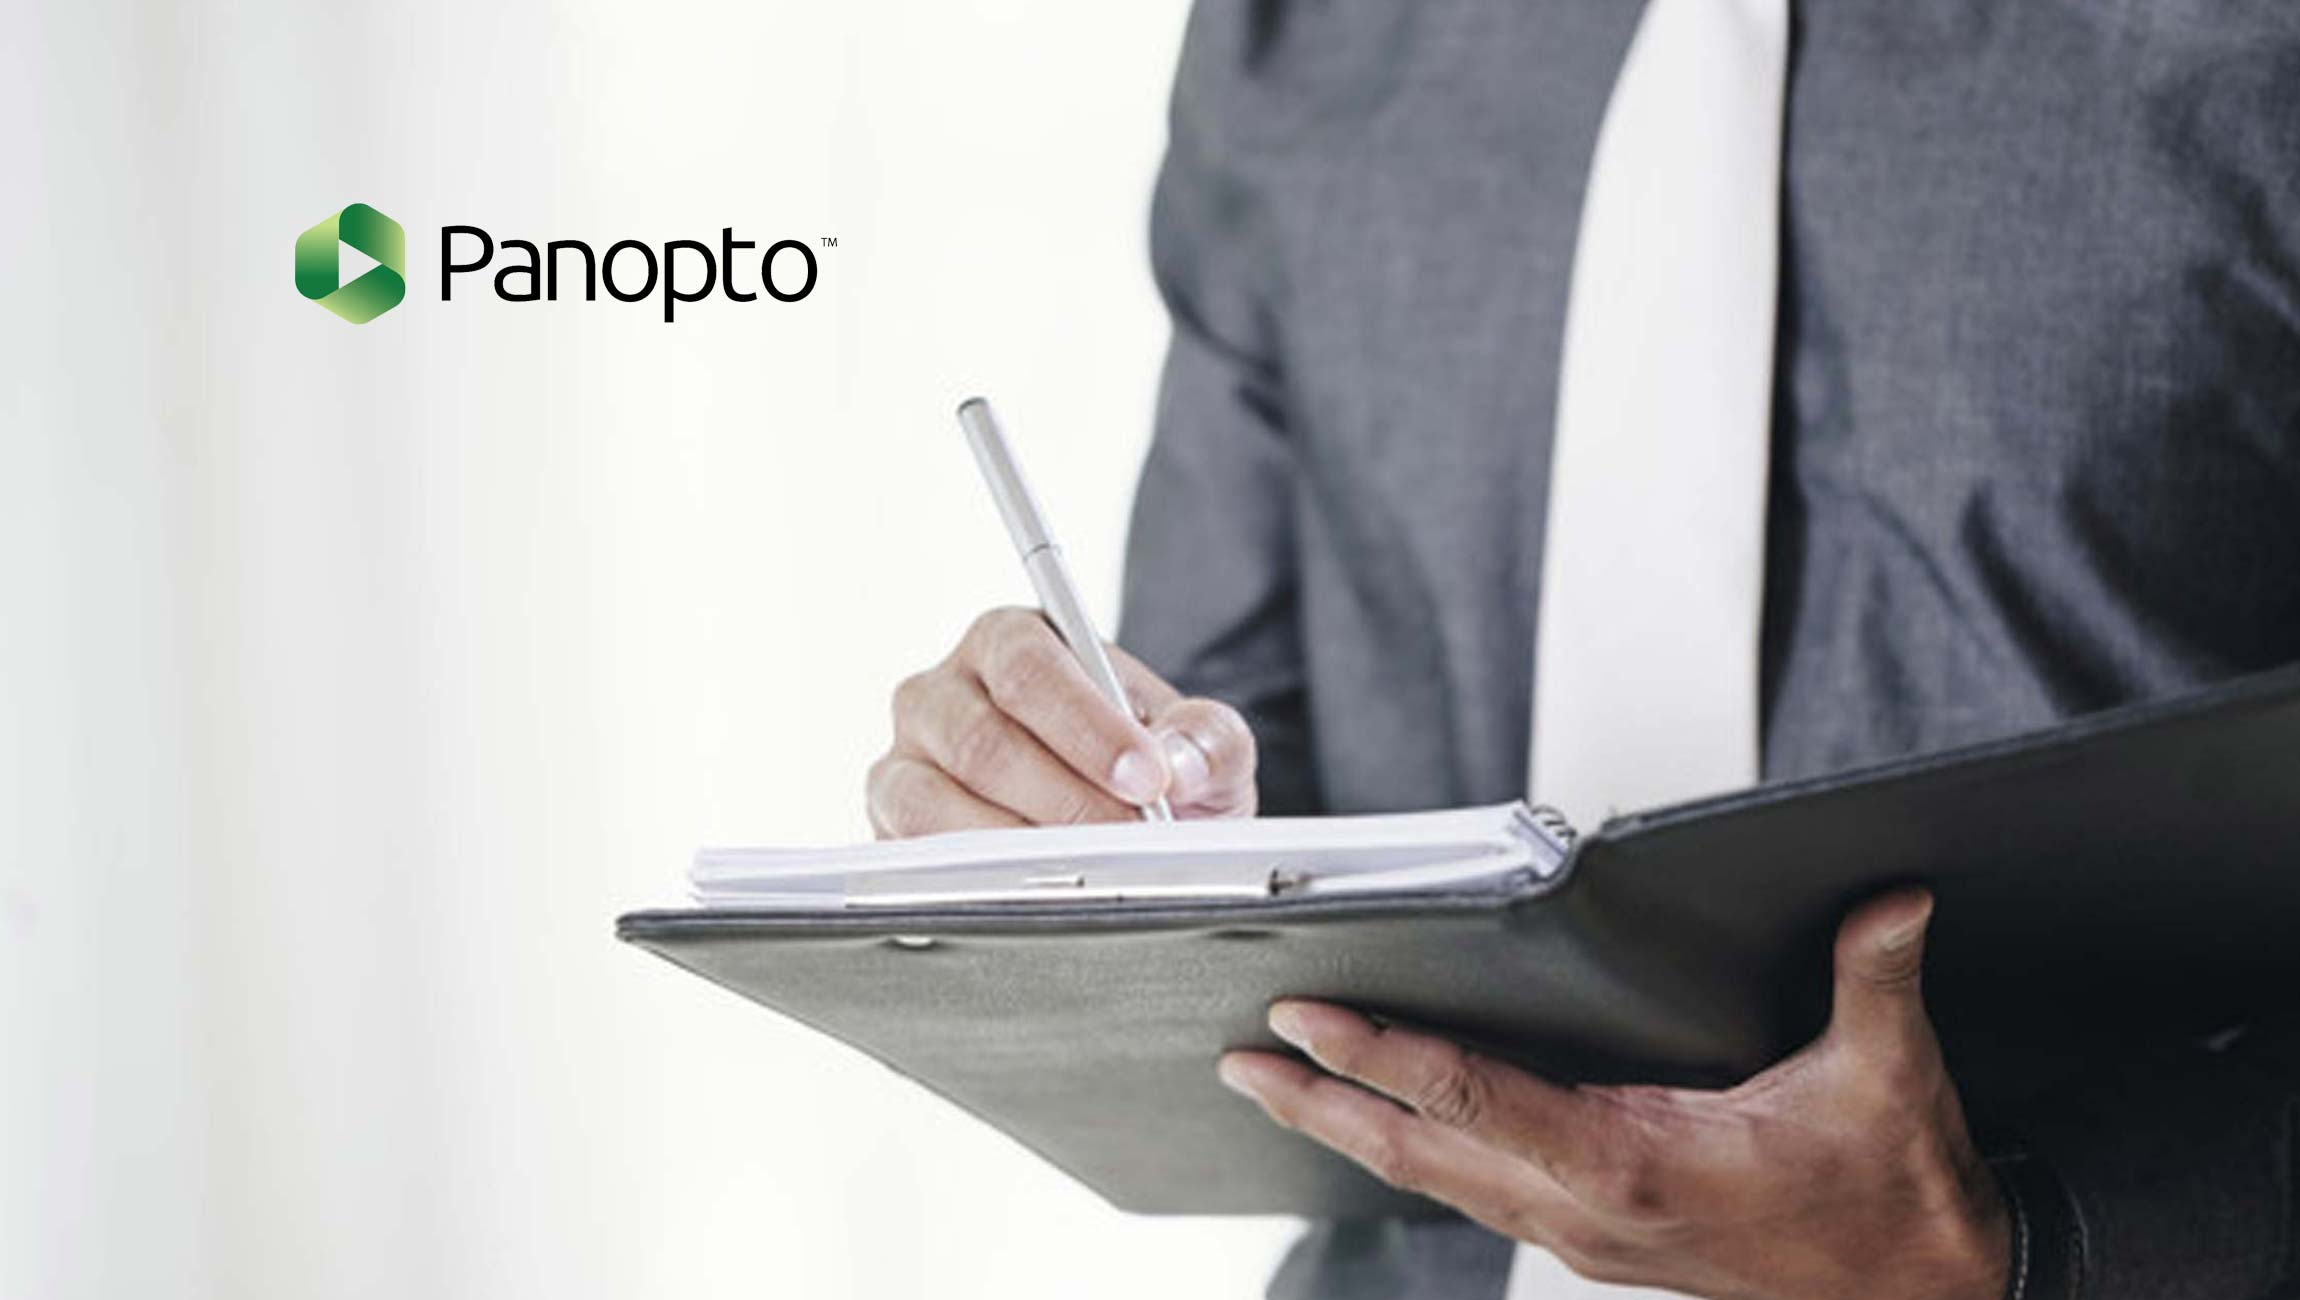 Panopto Announces New Collaboration Features for Rapid Knowledge Sharing